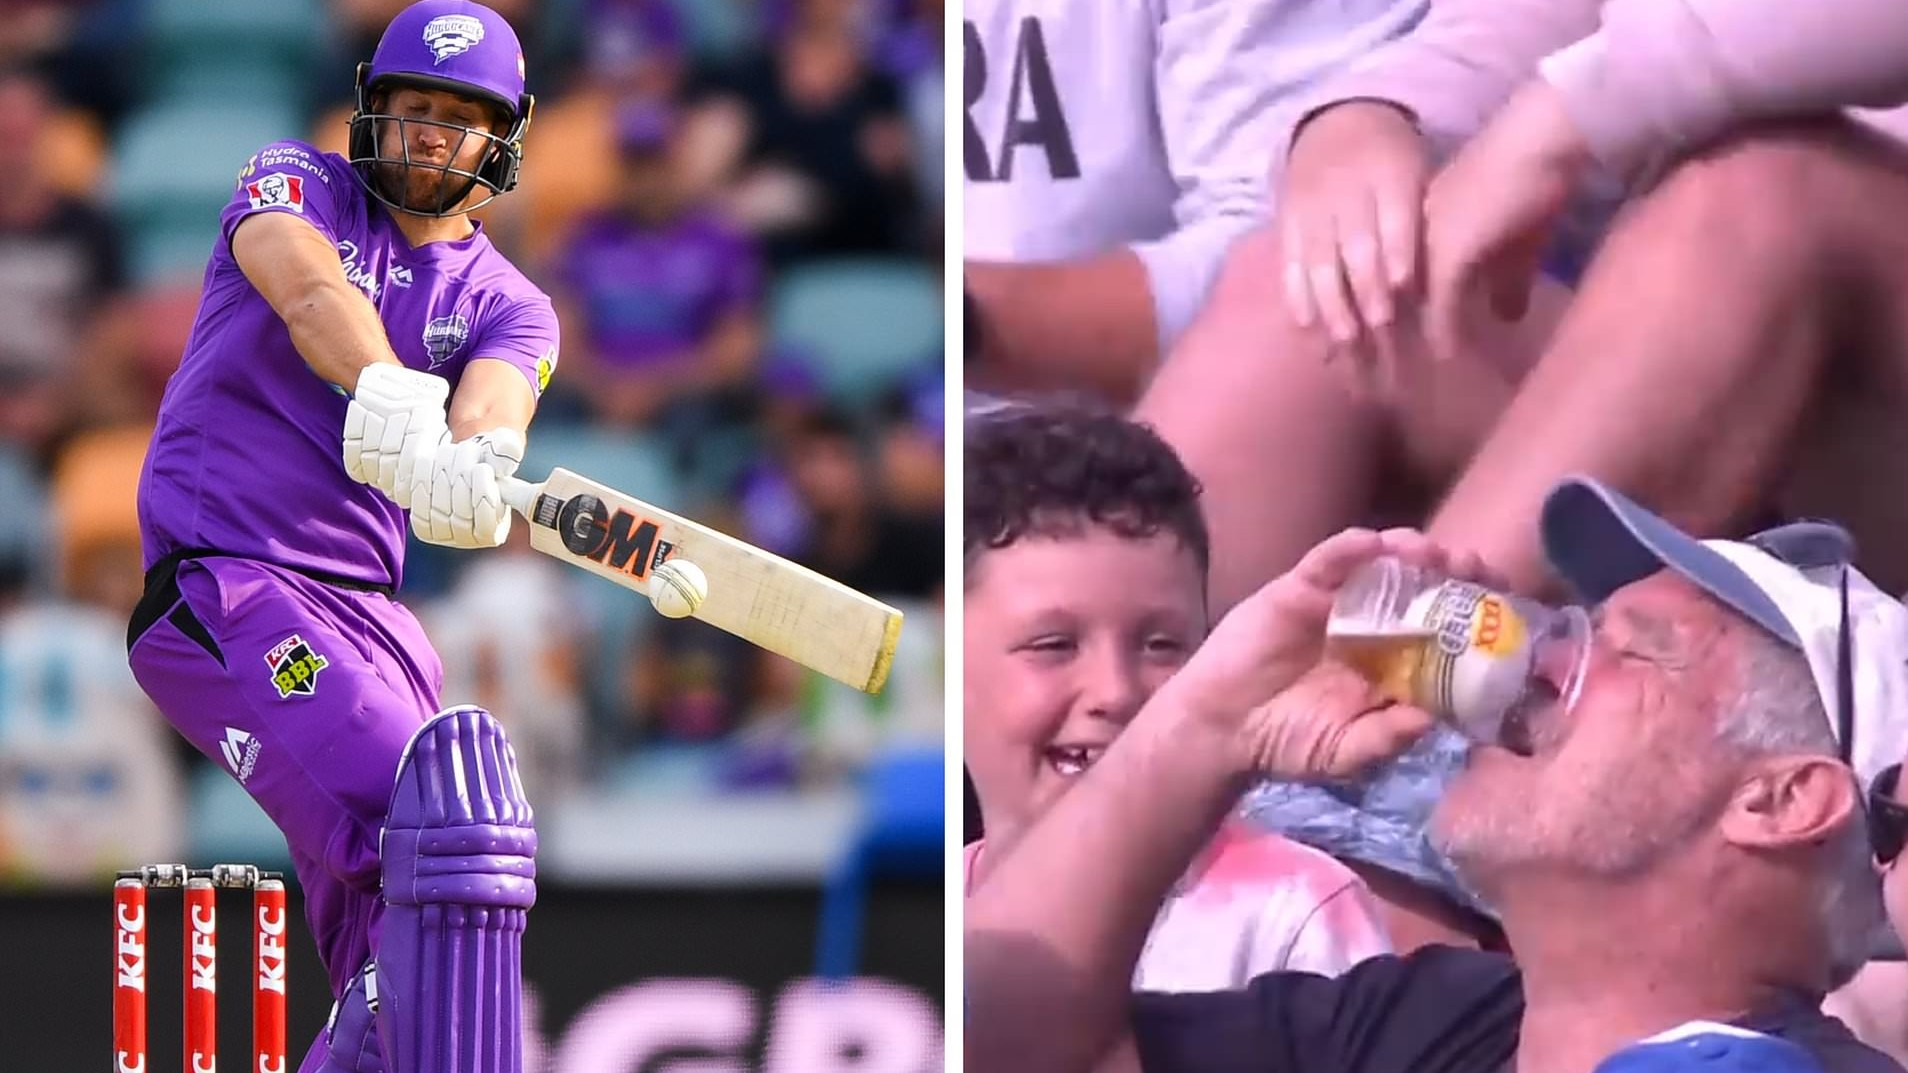 BBL 10: WATCH – Dawid Malan's six lands in a cup of beer, fan refuses to return the ball